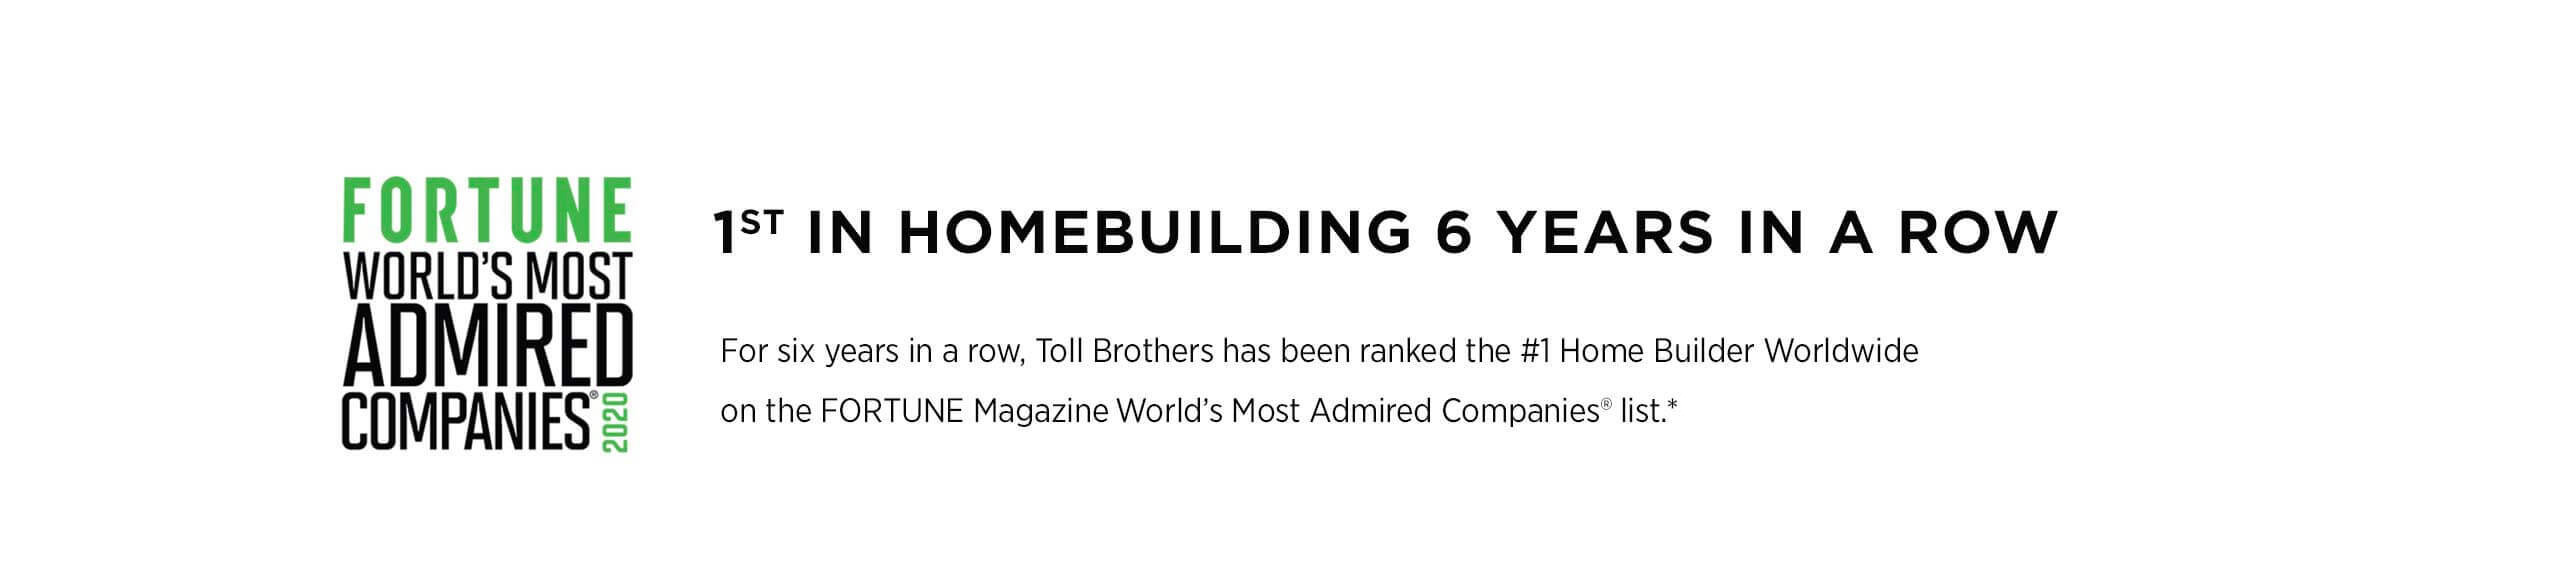 Fortune Magazine's most admired home builder